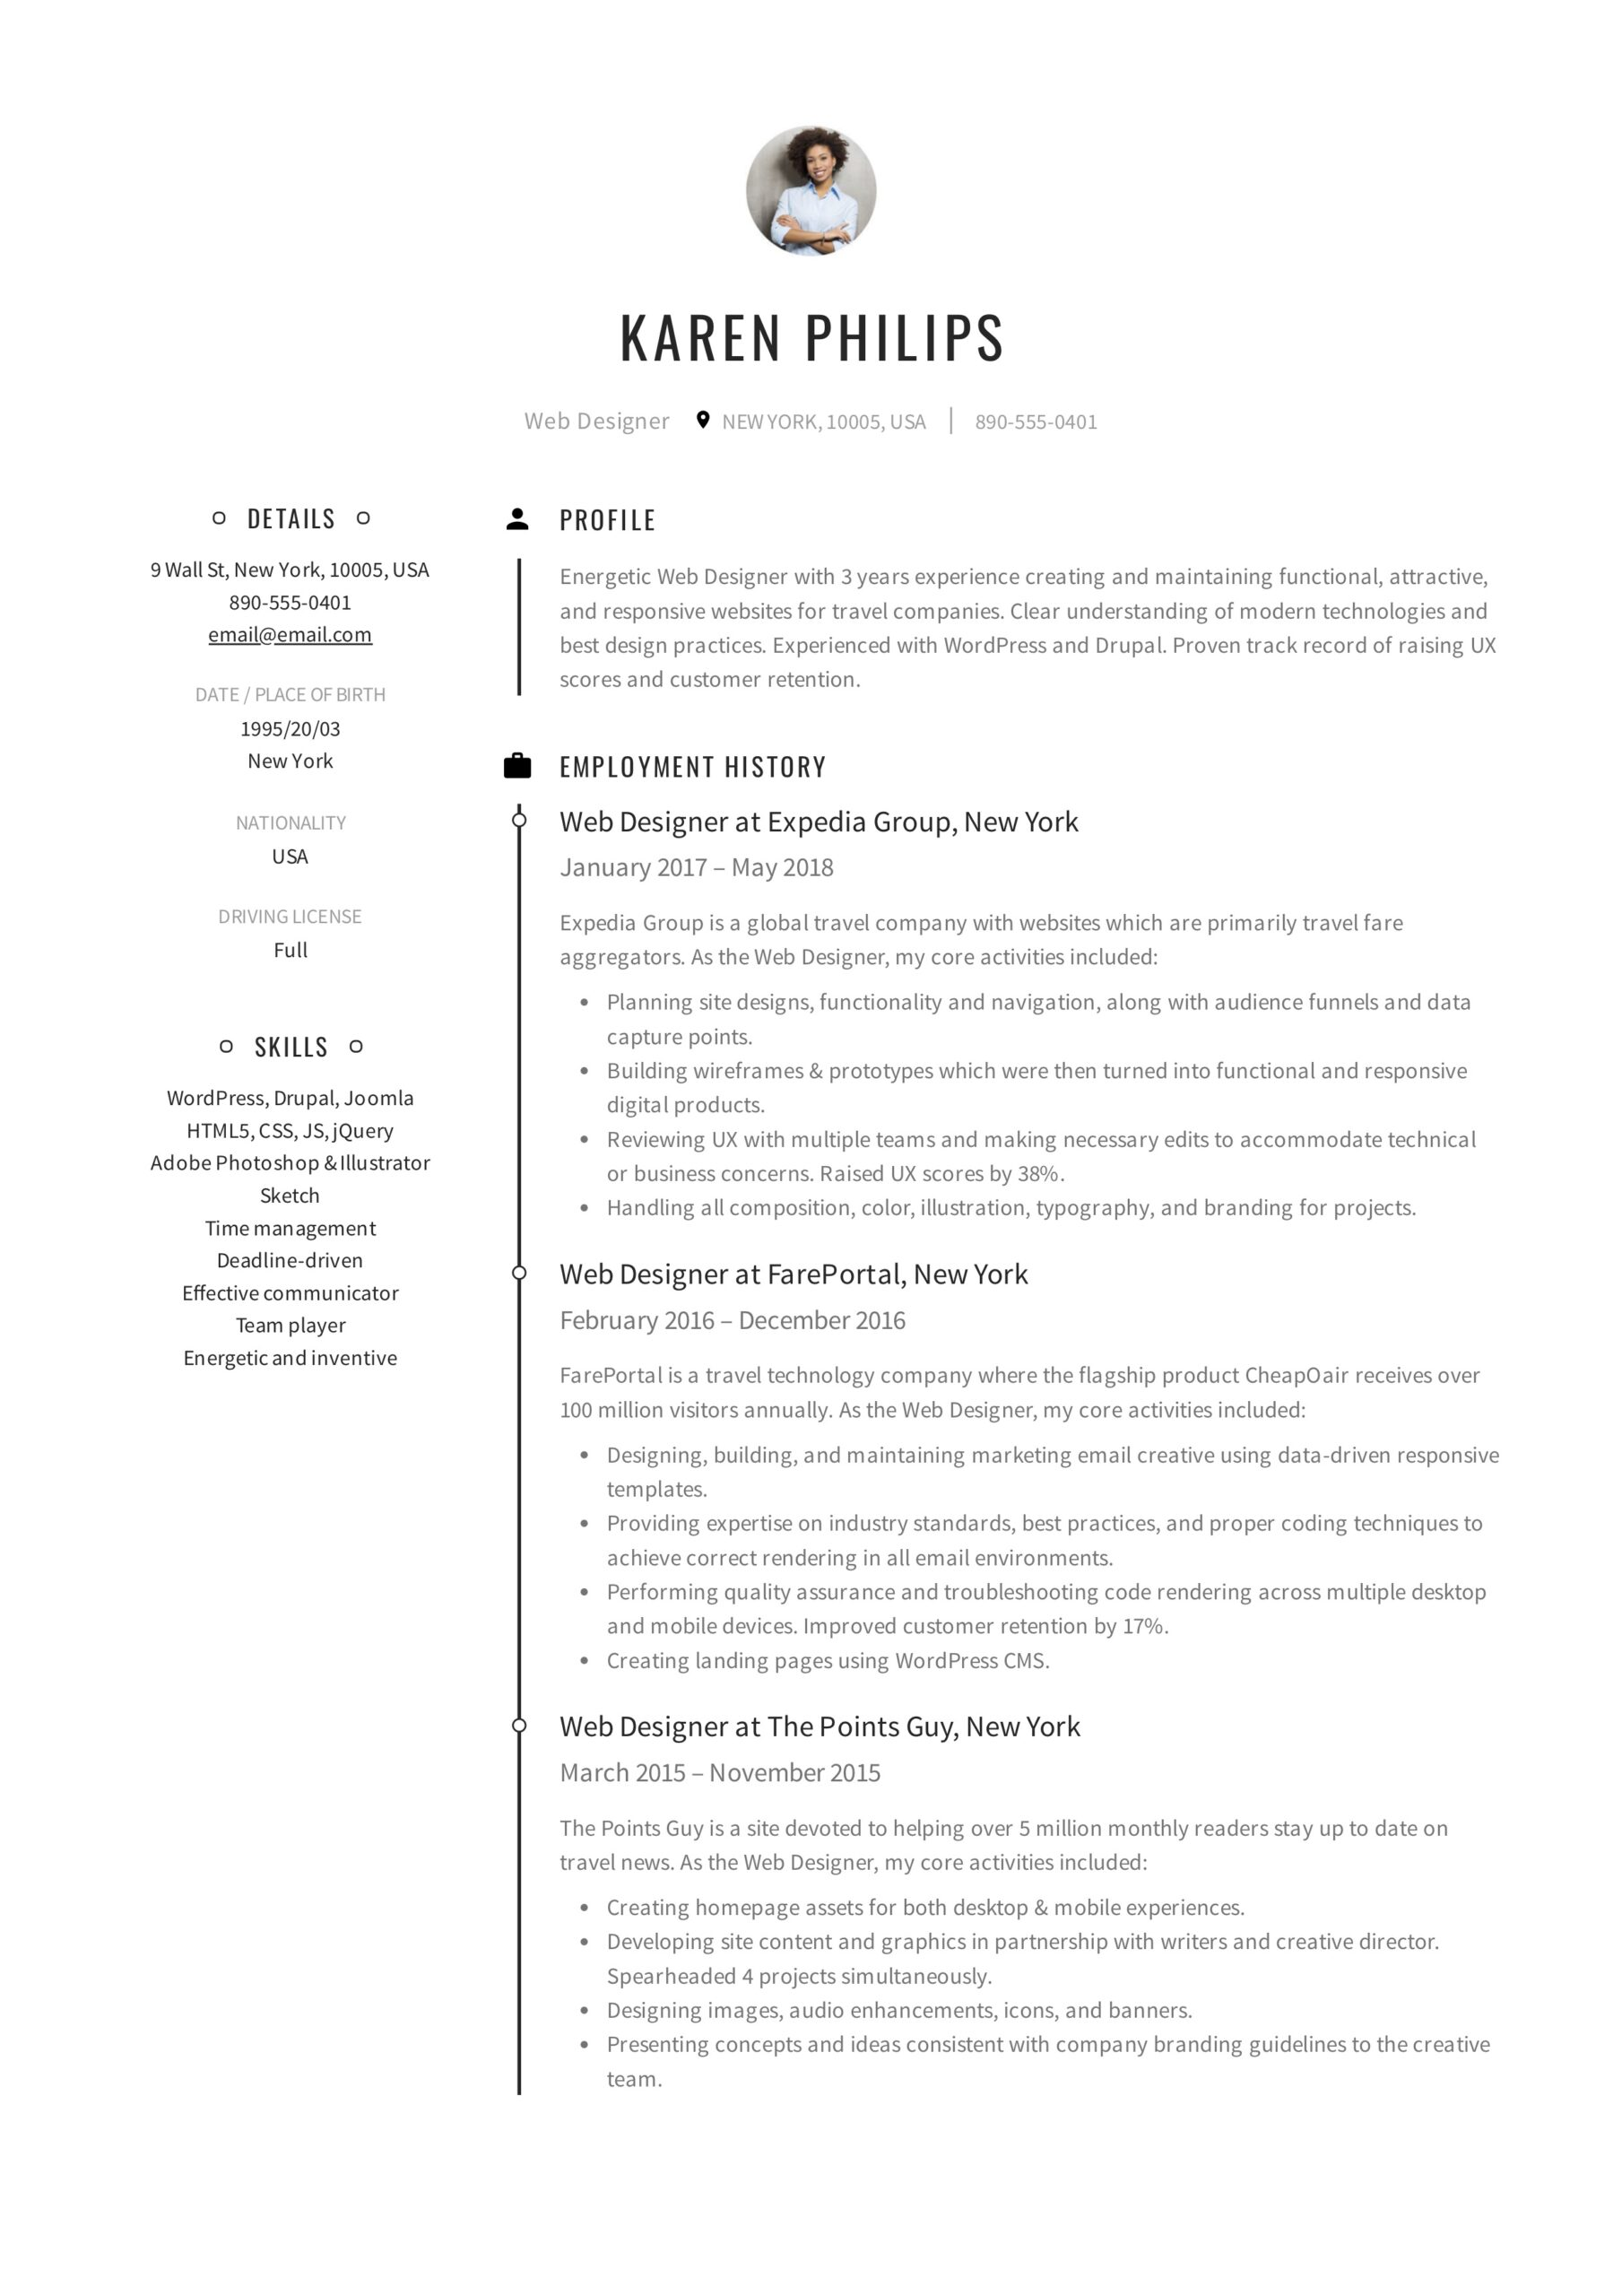 resume templates pdf word free downloads and guides can go to make karen philips web Resume Where Can I Go To Make A Resume